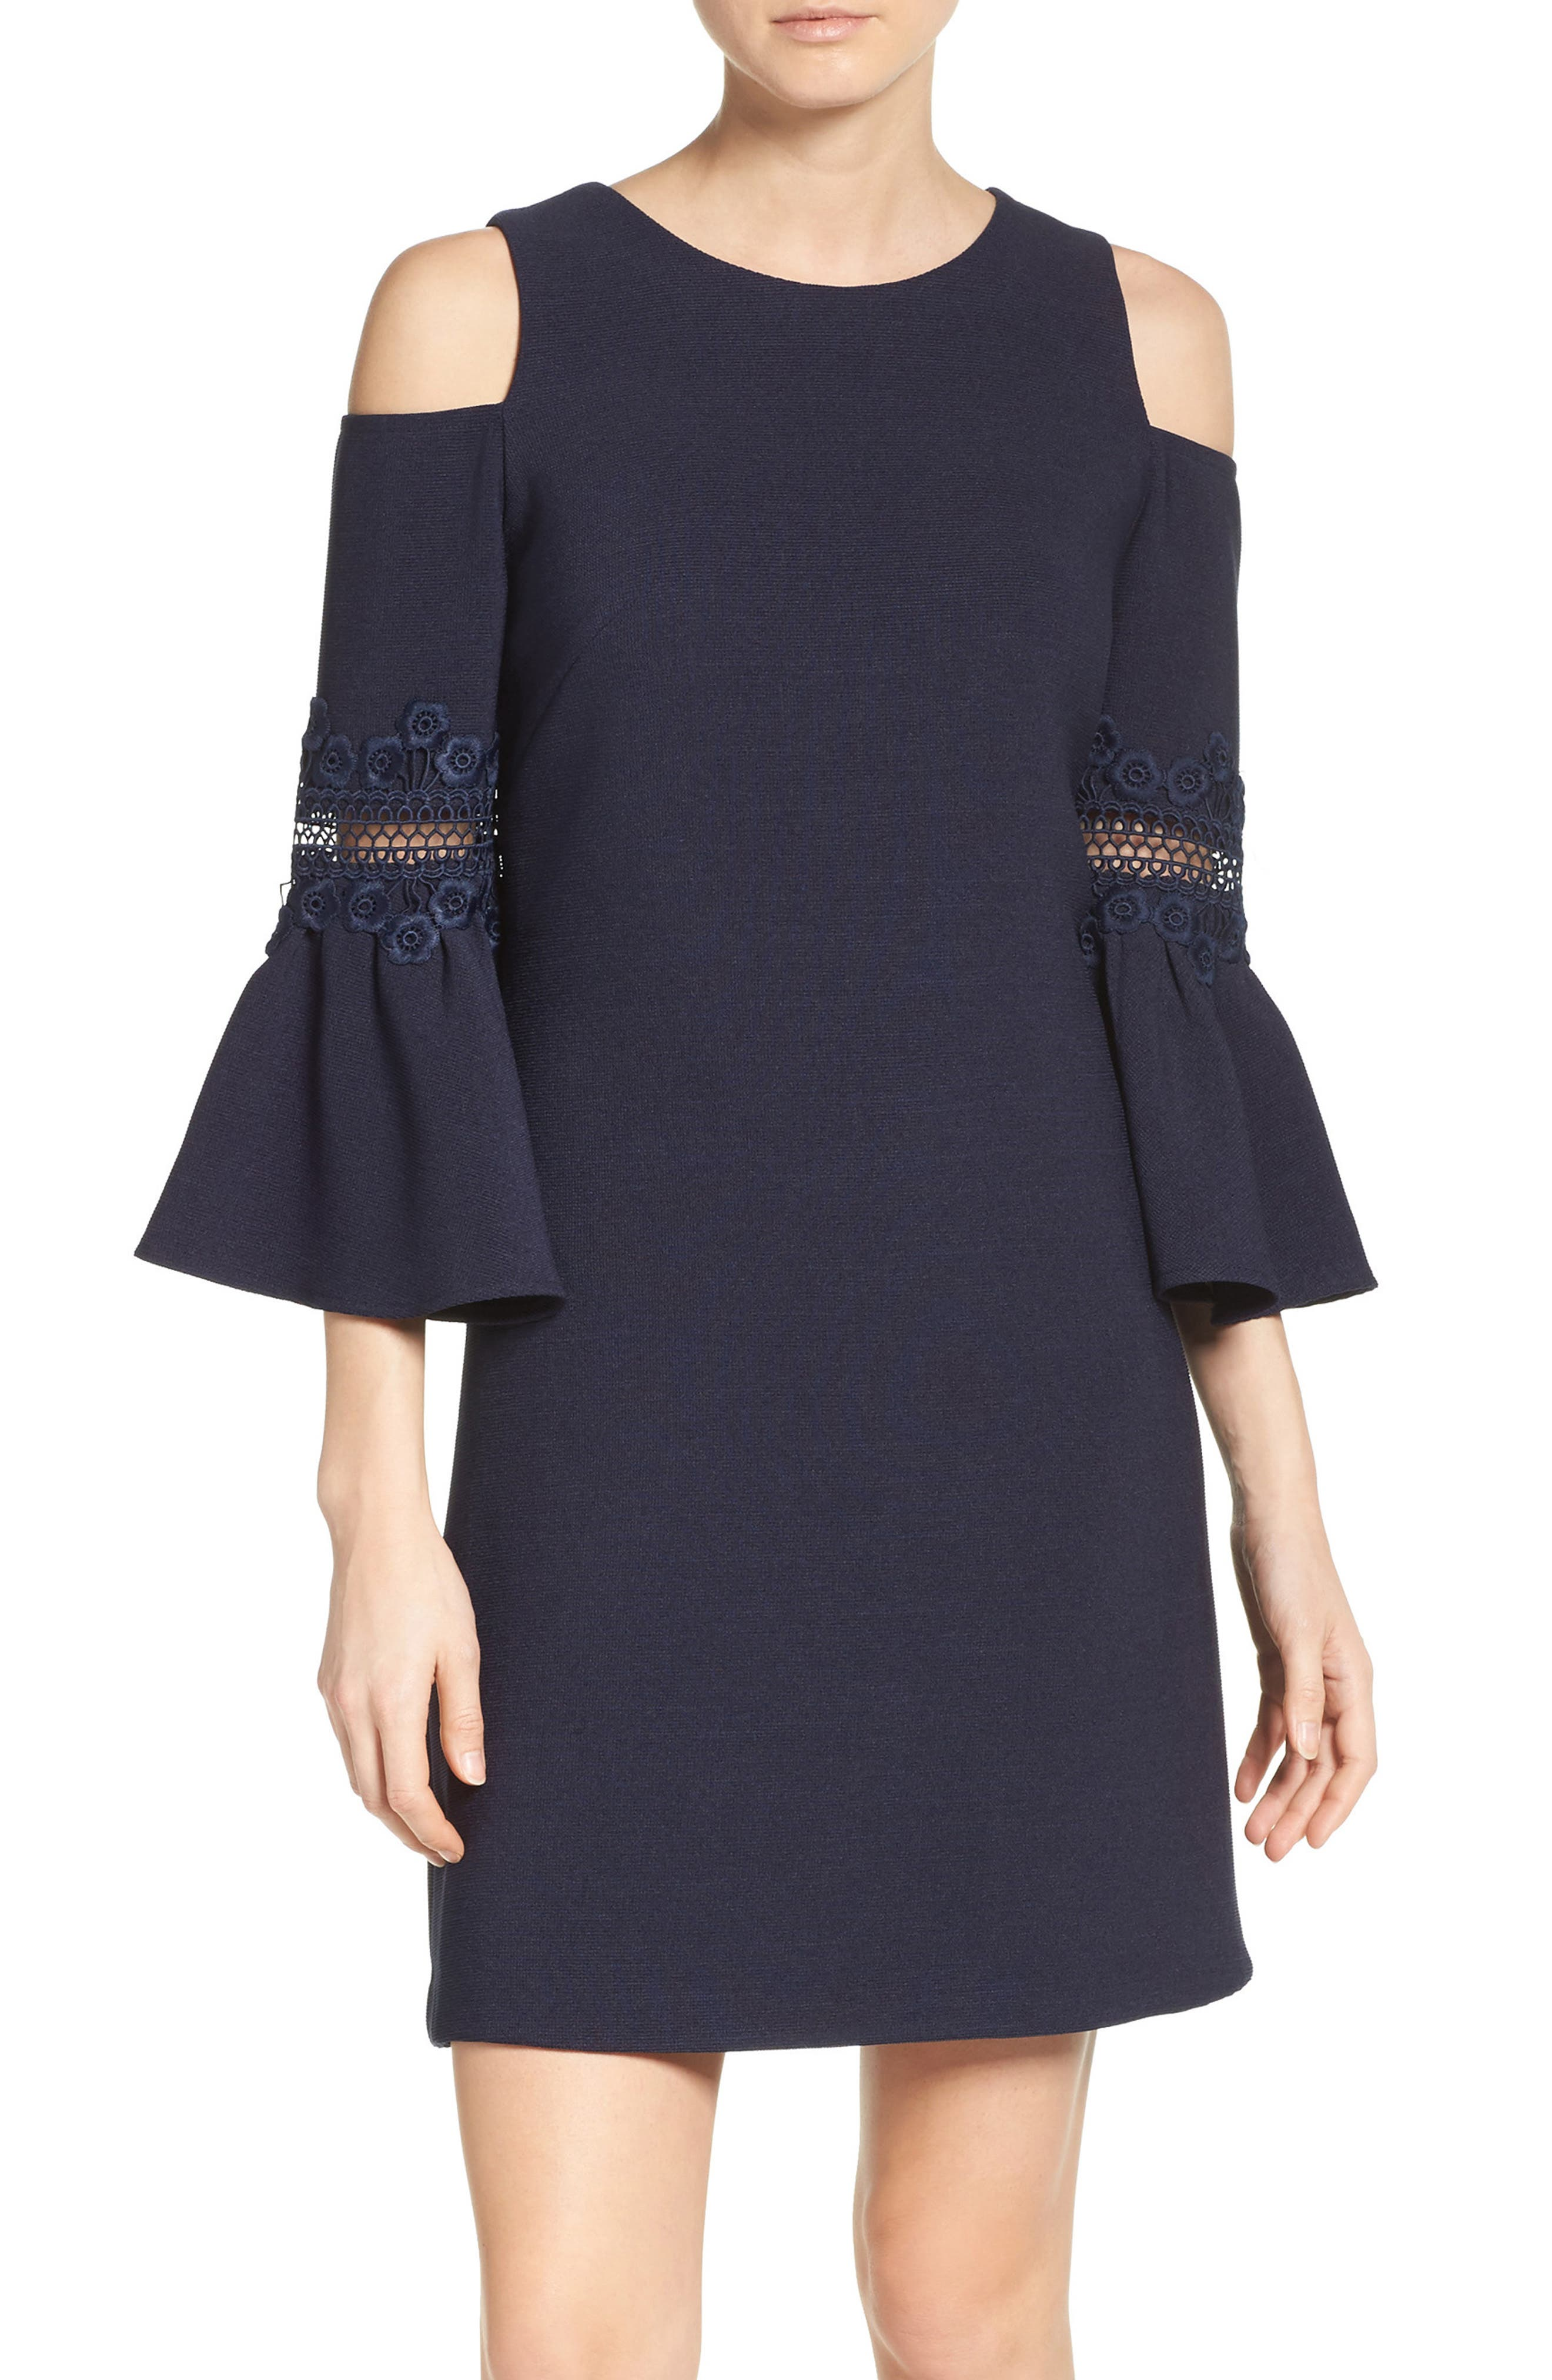 ELIZA J Lace Appliqué Crepe Cold Shoulder Dress